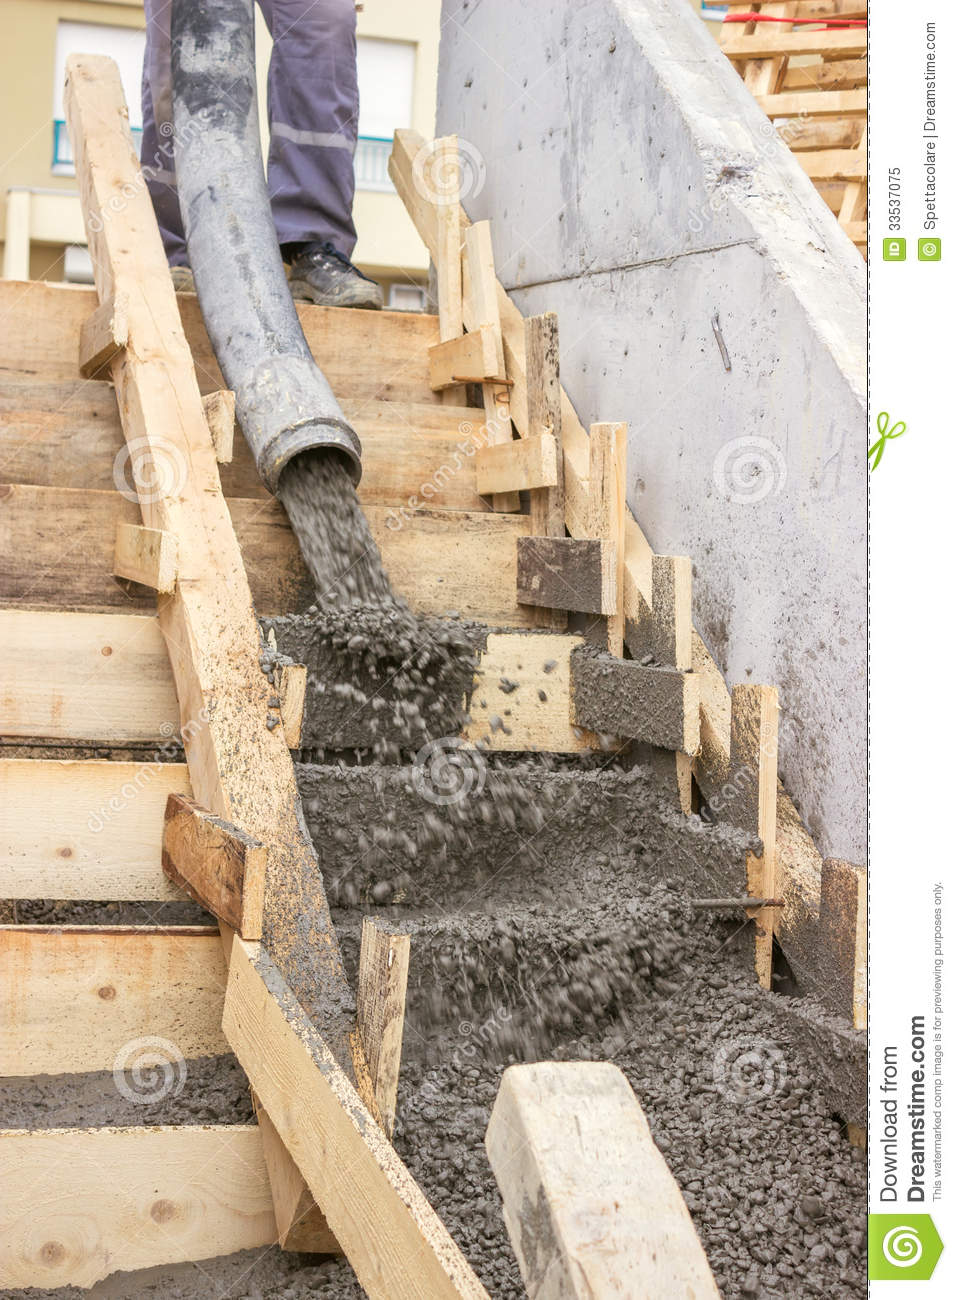 Royalty Free Stock Photo Pouring Concrete Steps Manual Workers Tube Truck Mounted Pump Image33537075 on round over doorway